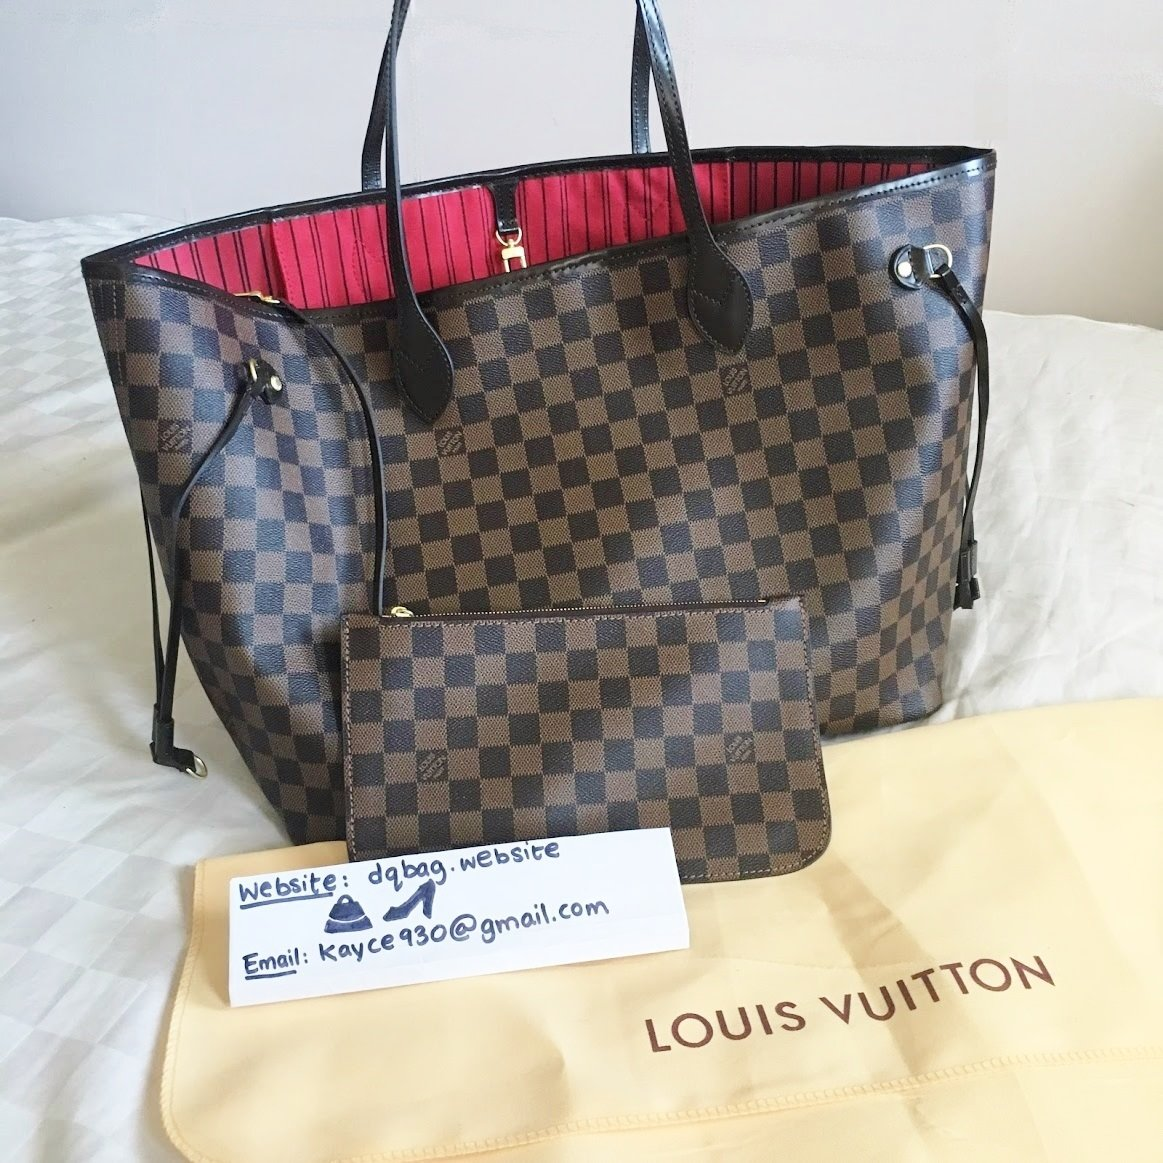 IN STOCK - 1:1 Louis Vuitton Damier Ebene Neverfull in MM with Pouch